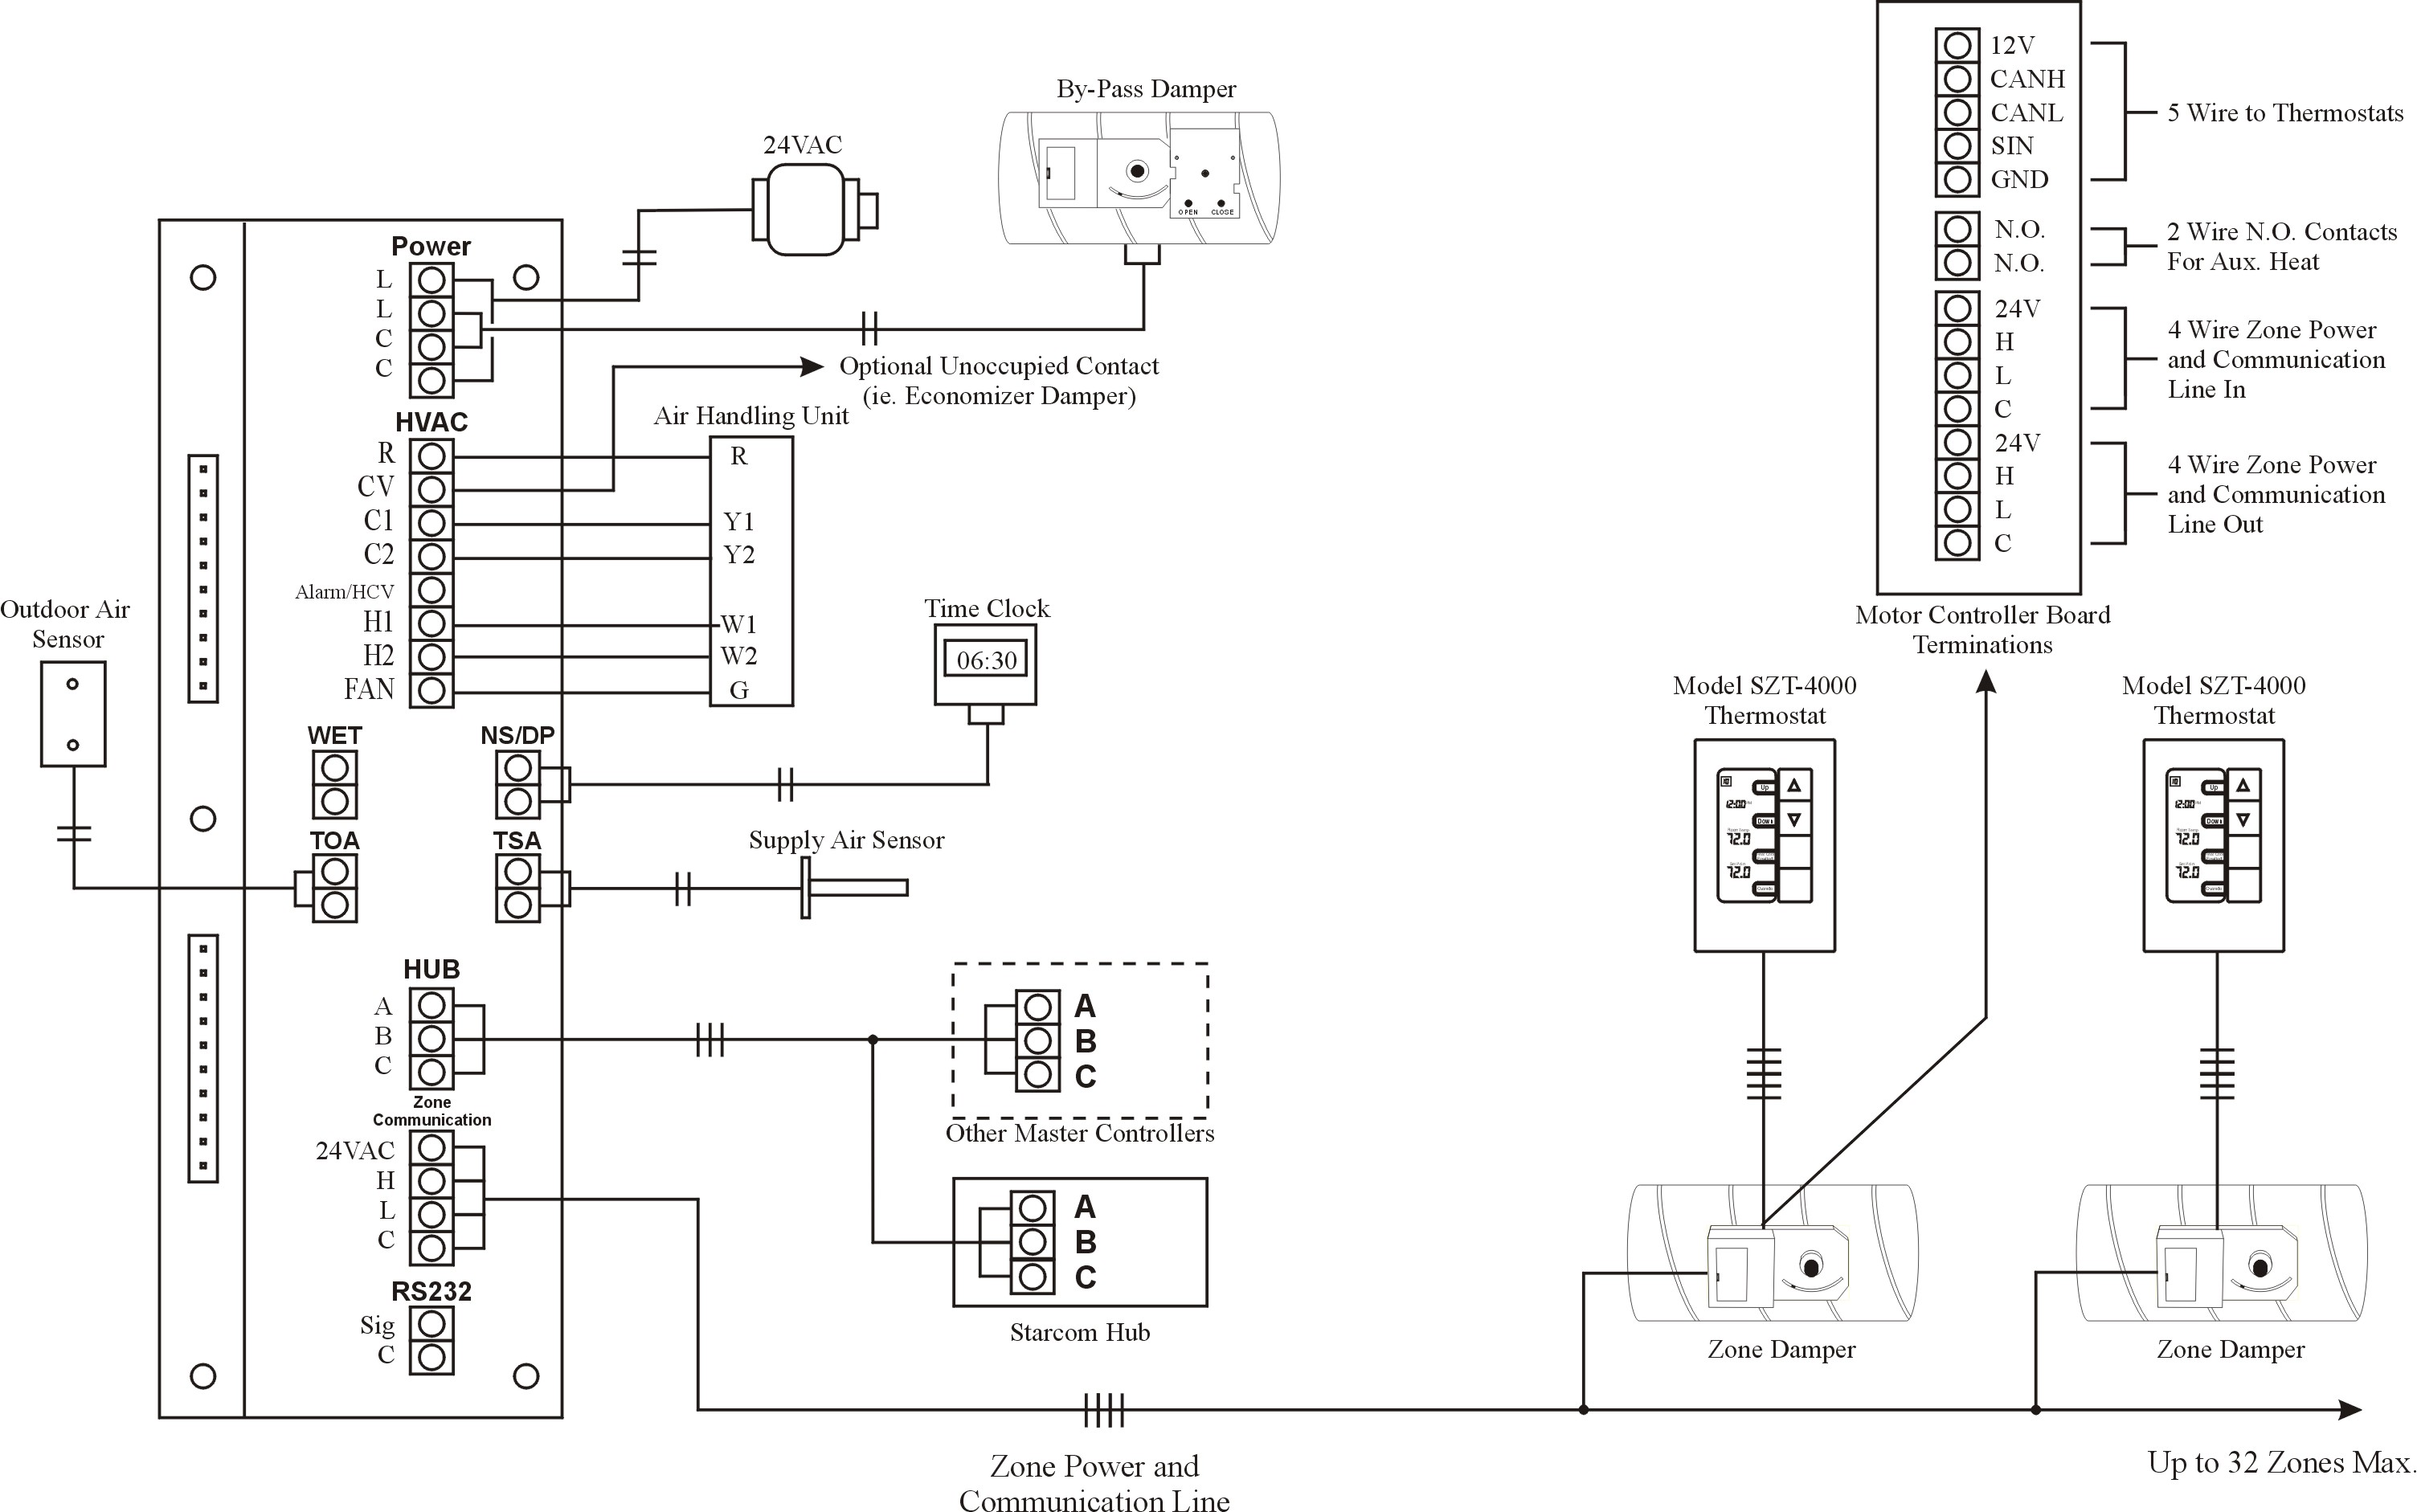 Starzone4000_wiring wiring diagrams zone all controls system wiring diagram at bayanpartner.co